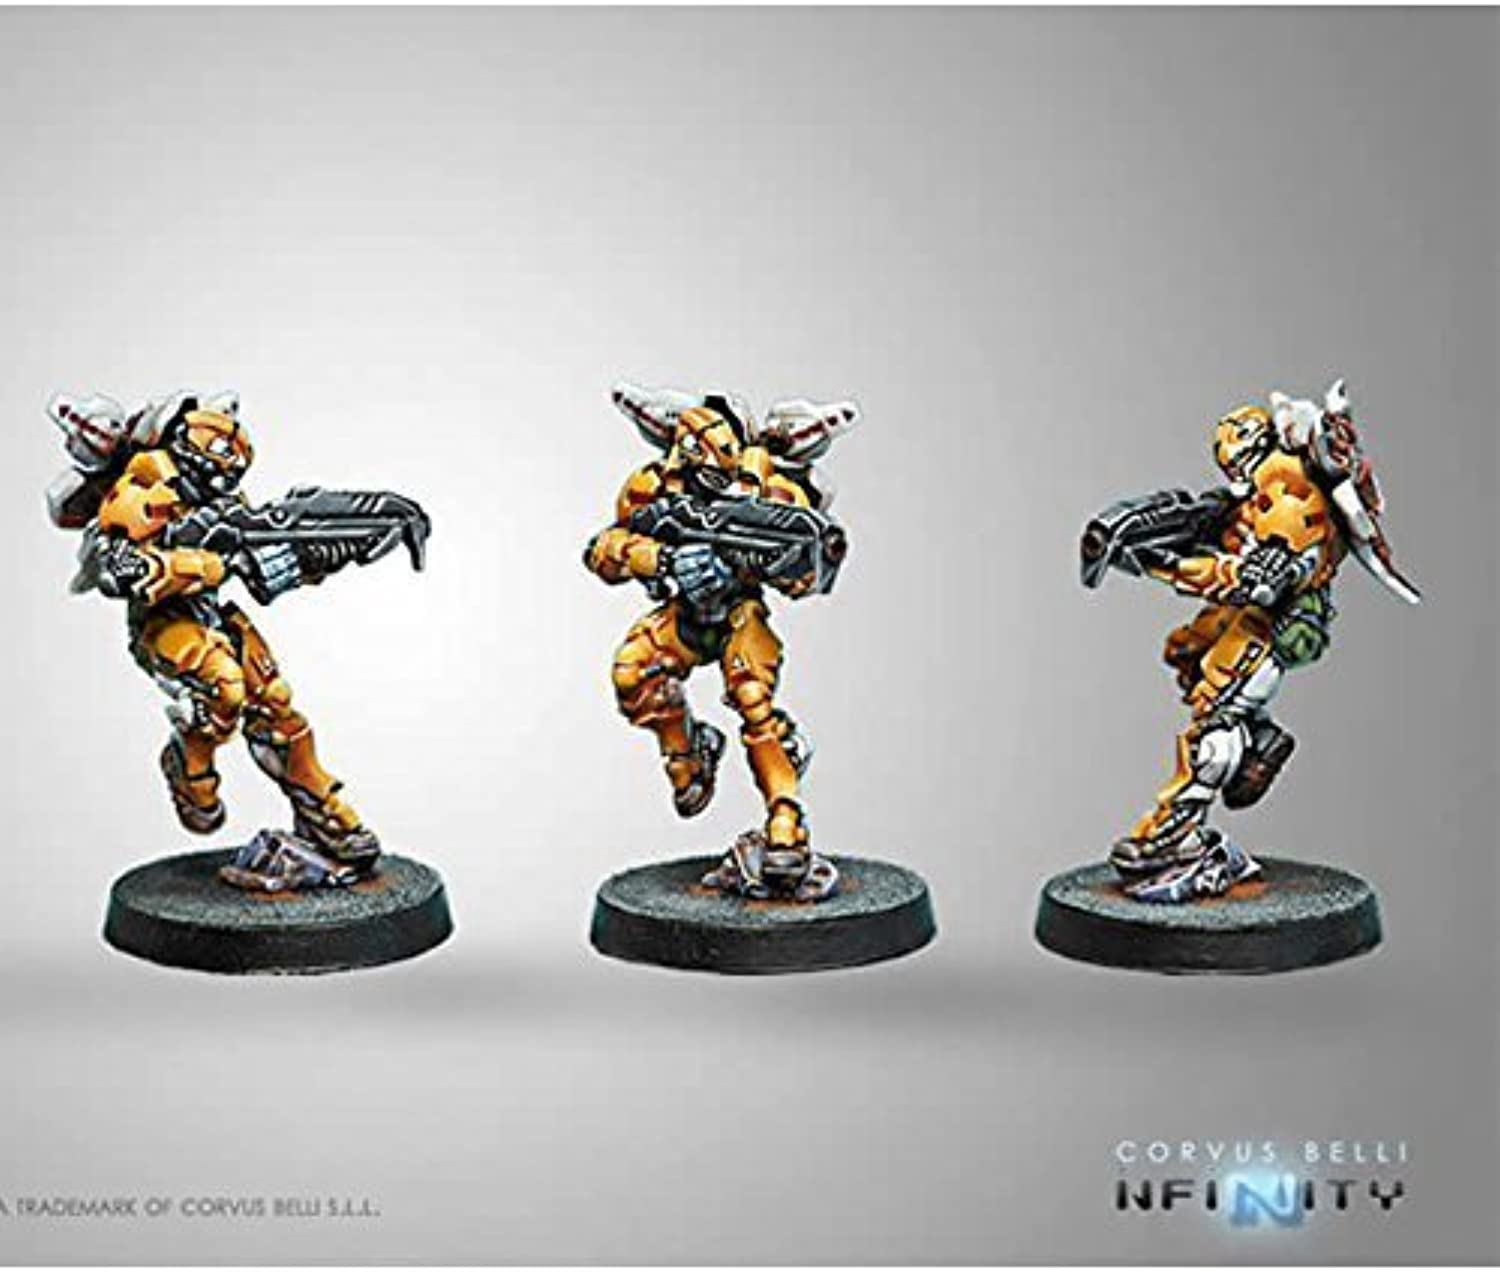 Infinity  Yu Jing Tiger Soldiers w  Spitfire by Corvus Belli